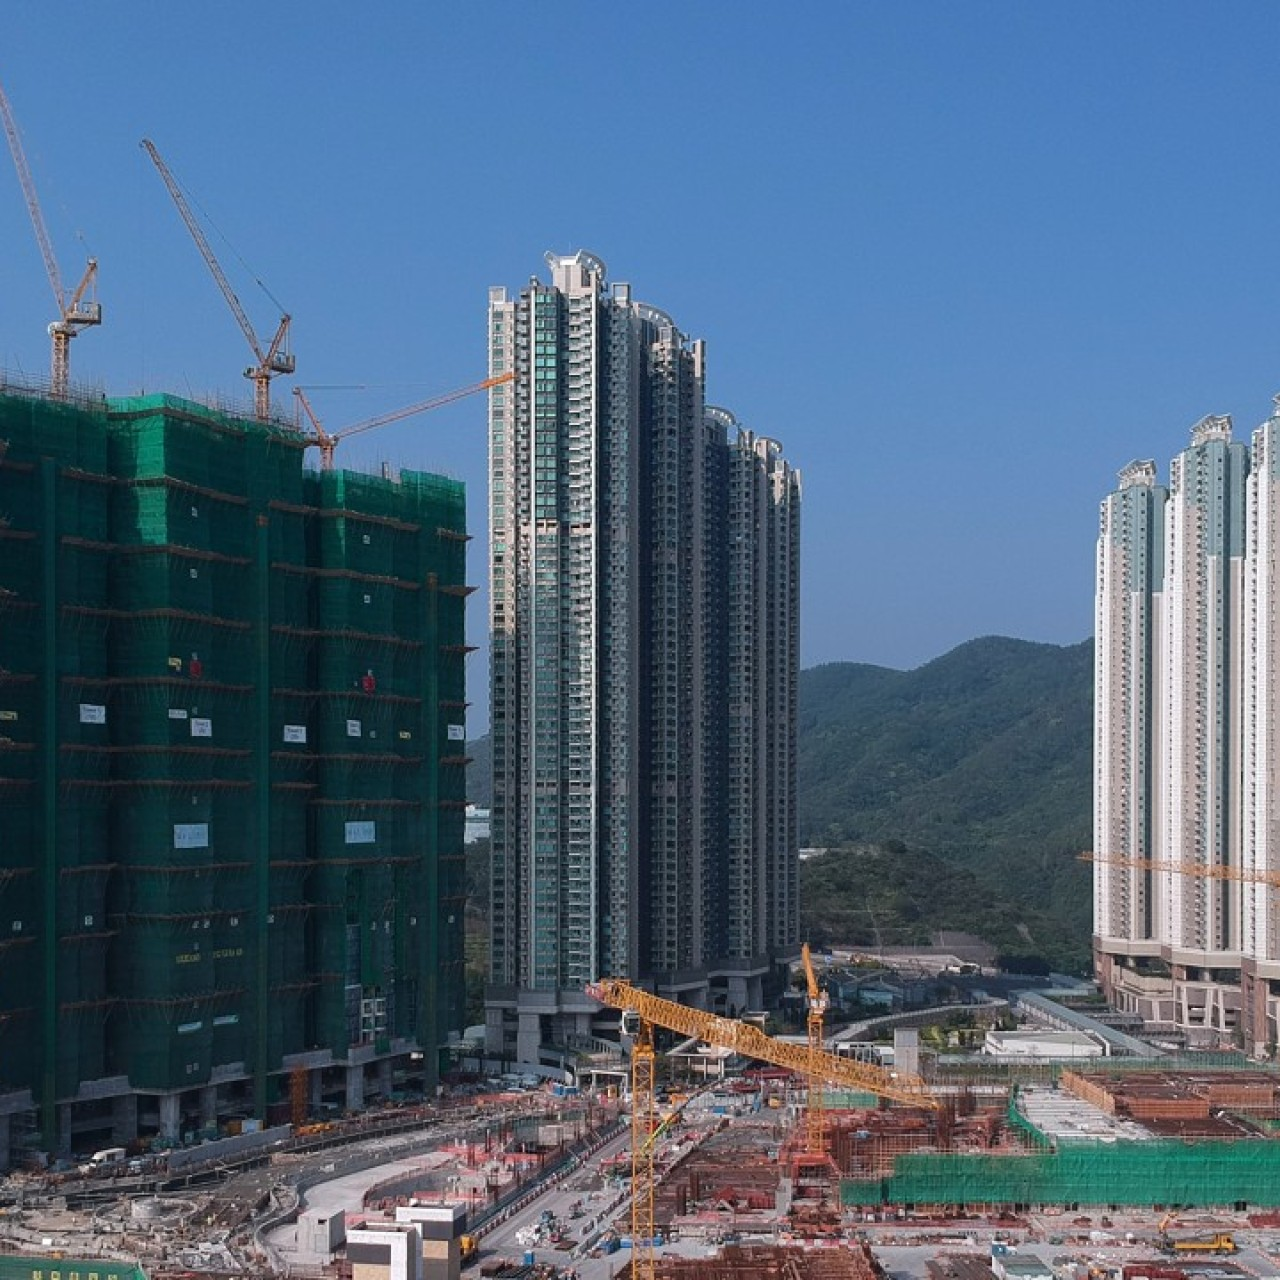 Hong Kong's plan to become a 'smart' city needs some fresh thinking